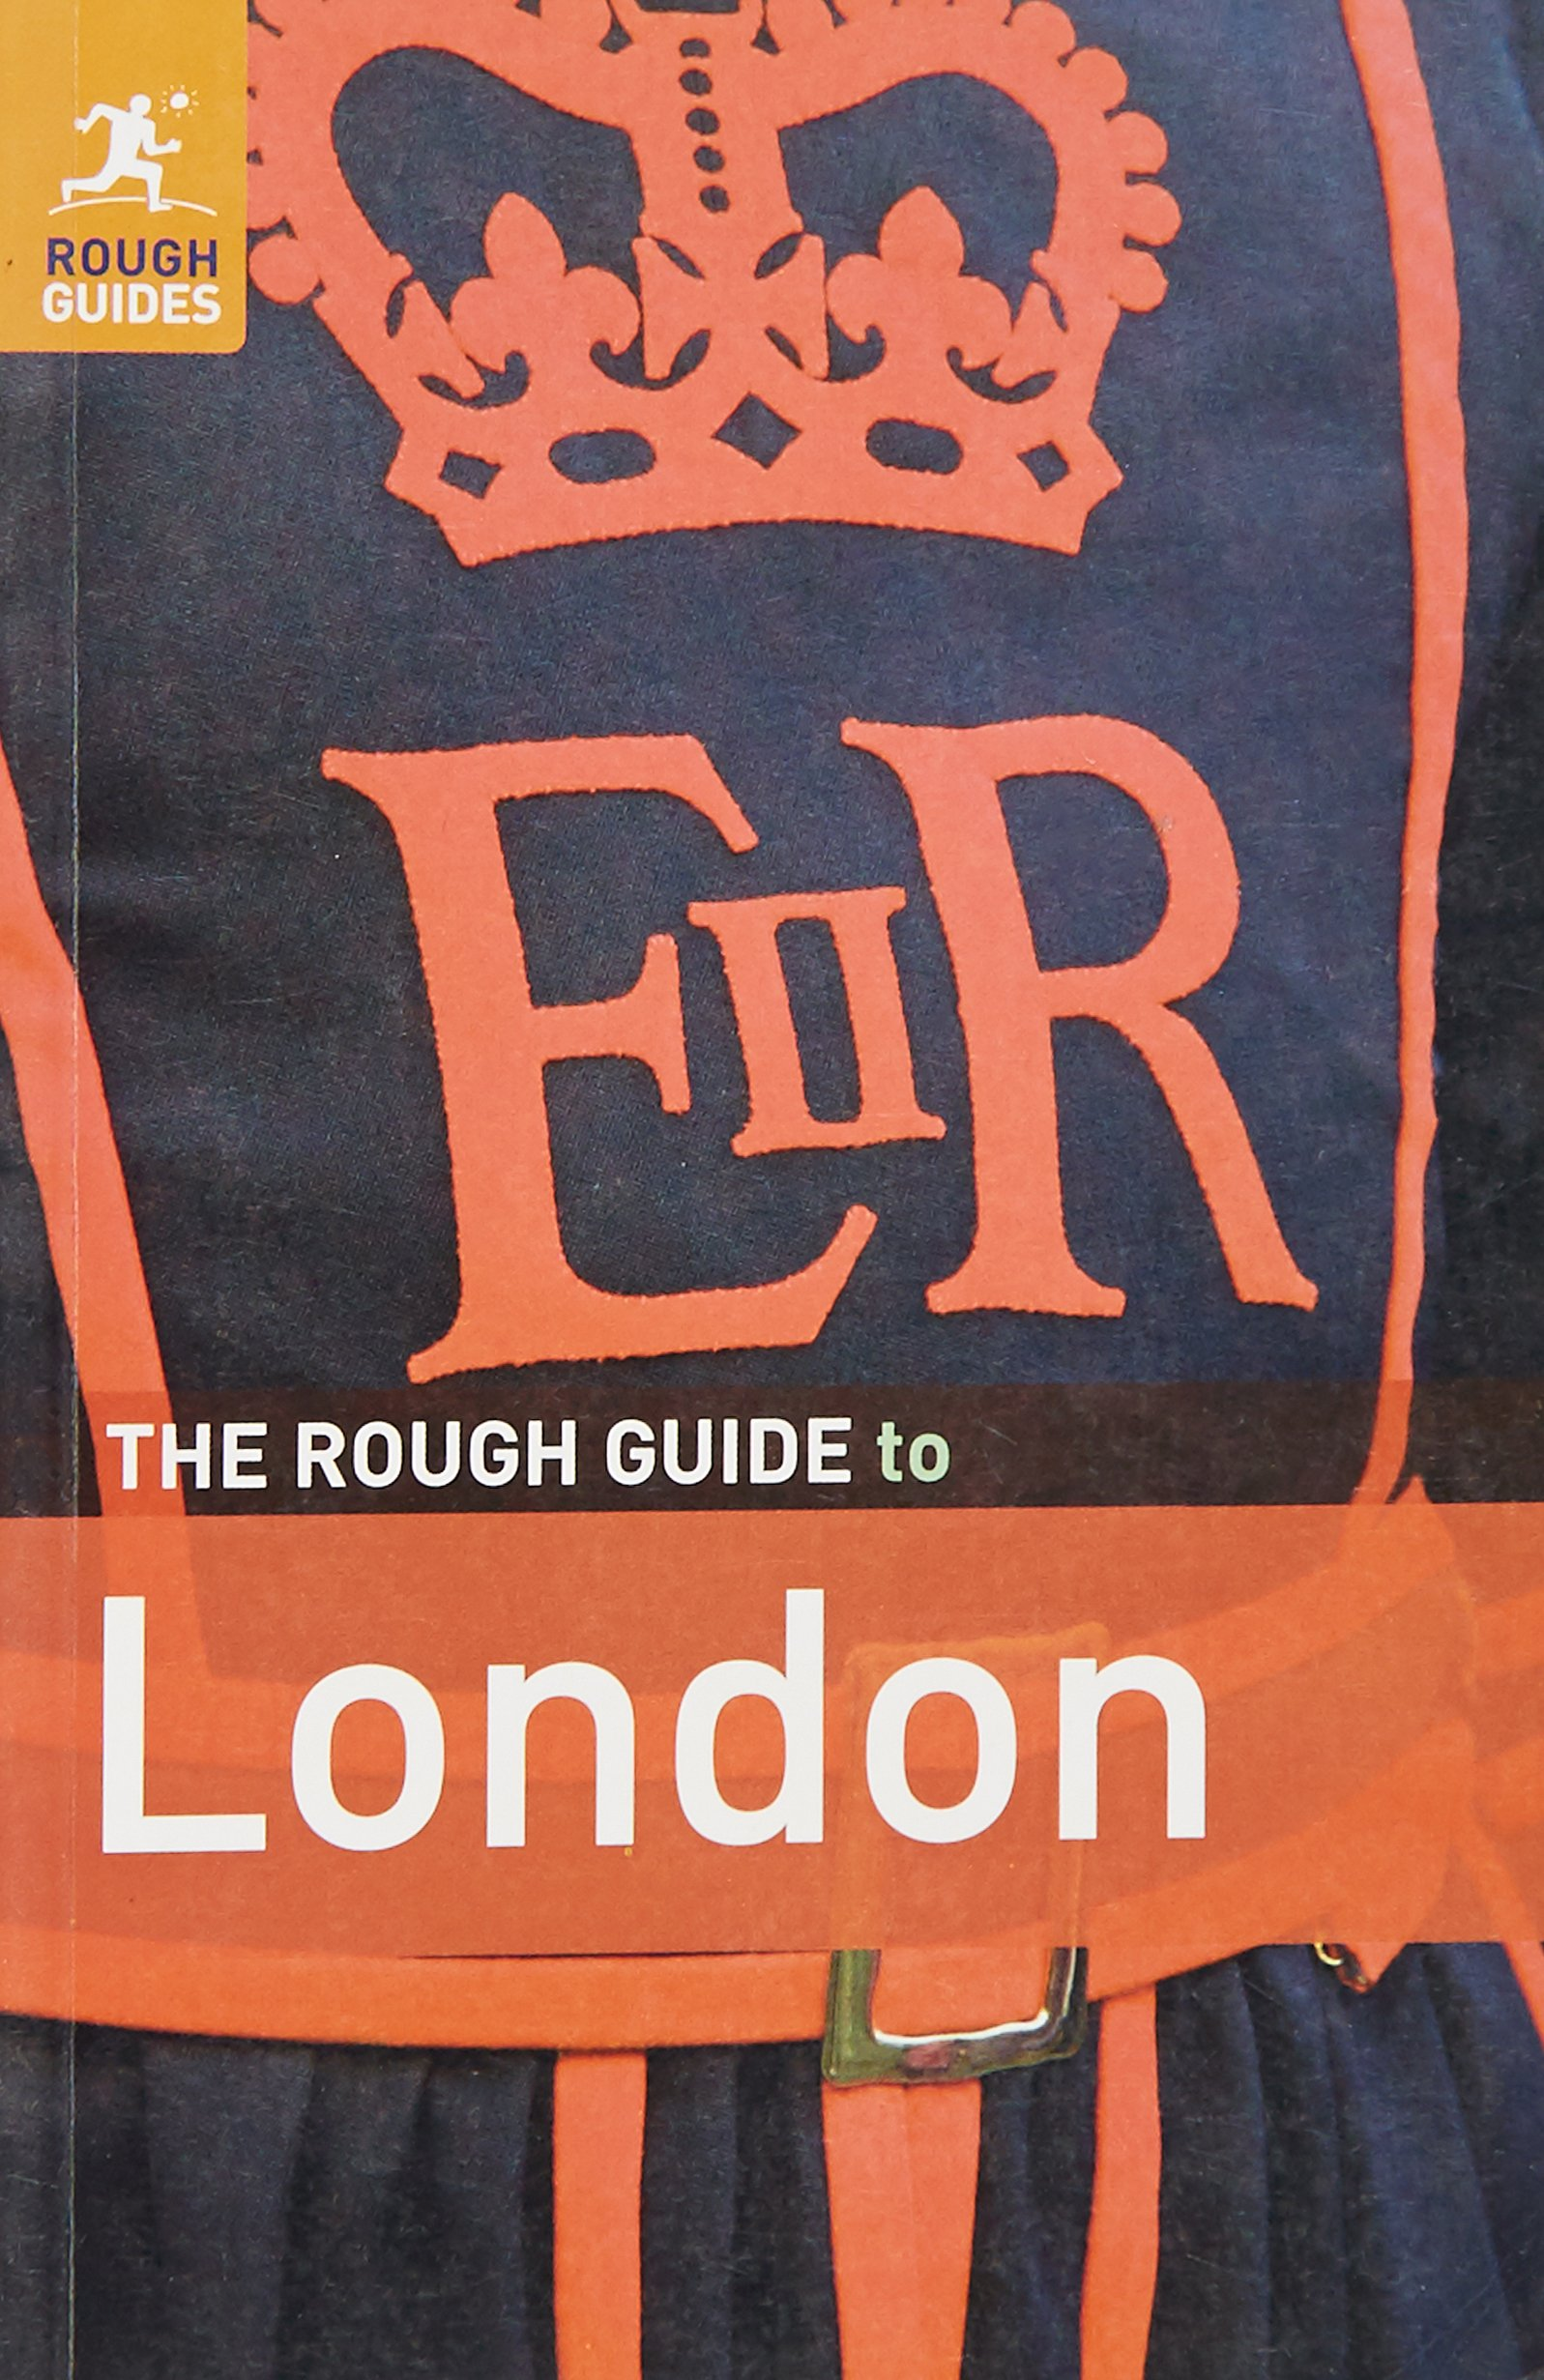 The Rough Guide to London: Rob Humphreys: 9781848362789: Amazon.com: Books